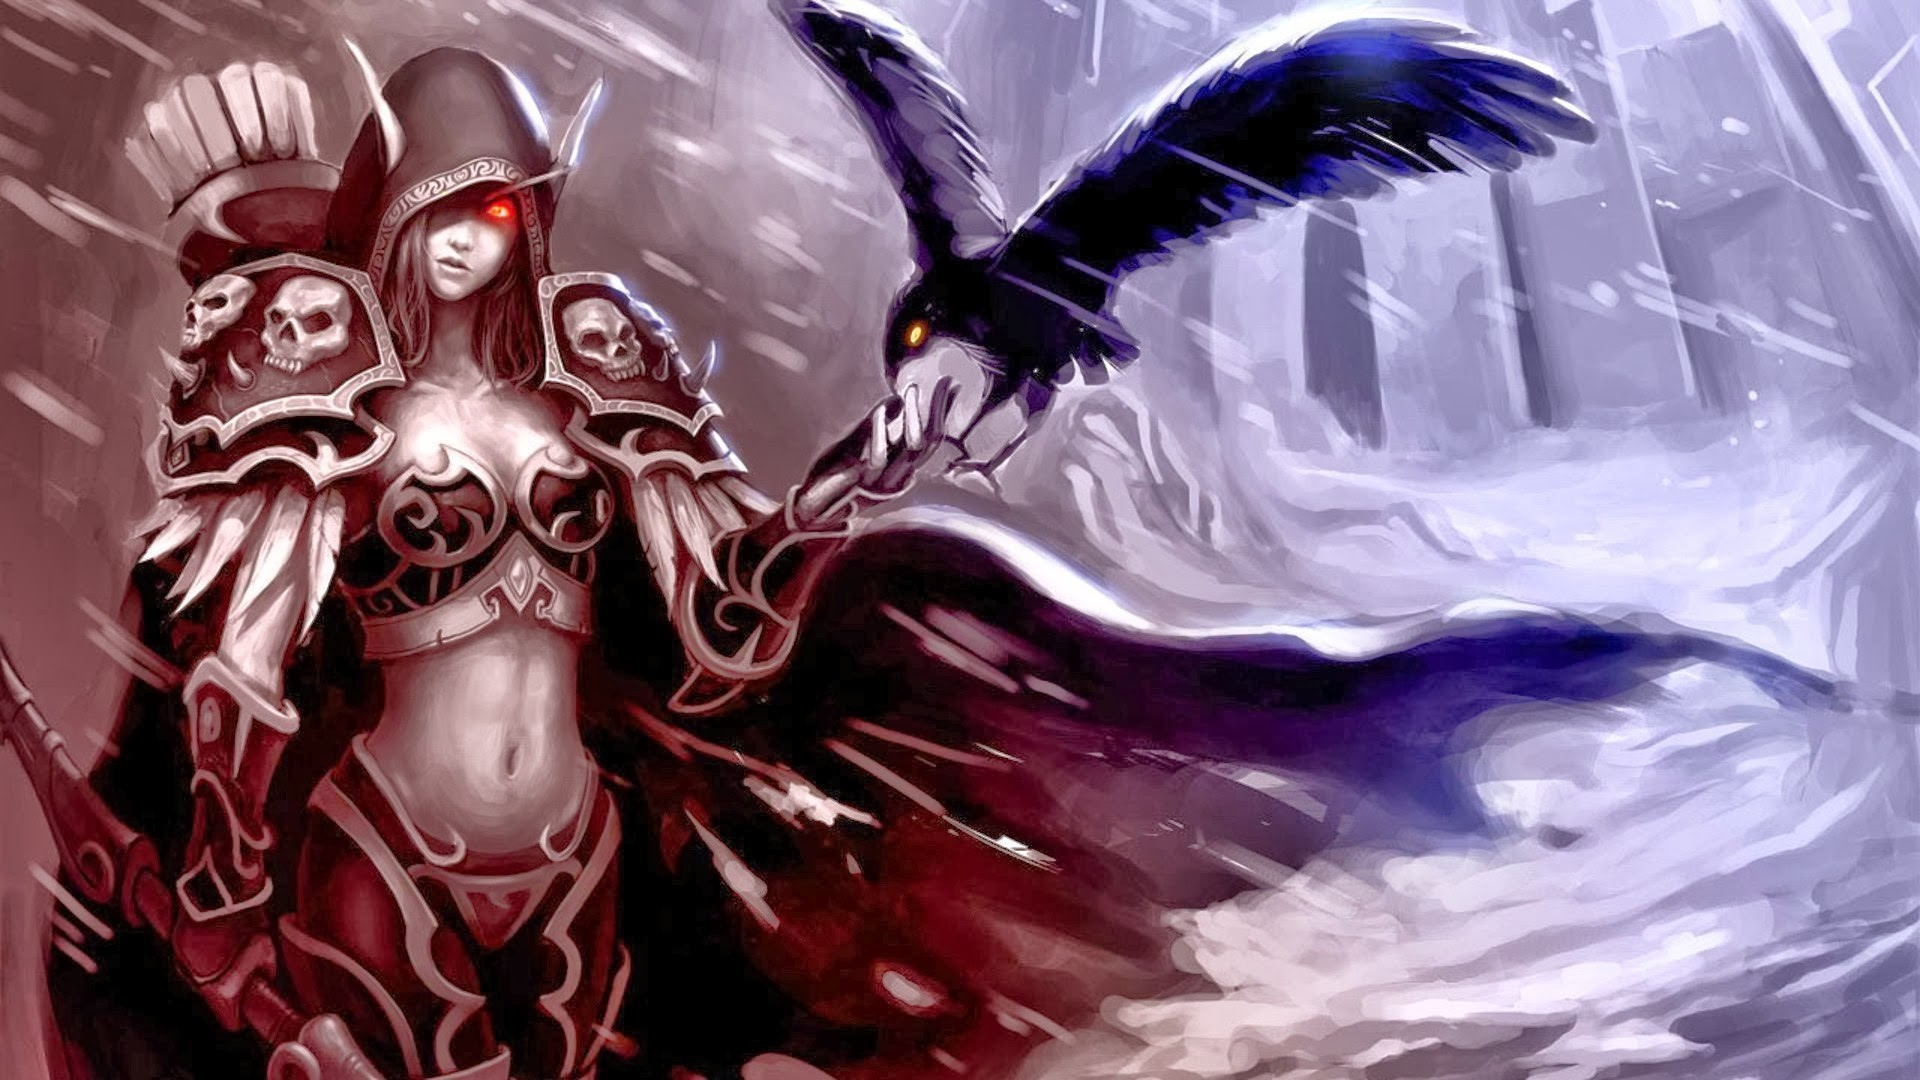 3d Vampire Female Wallpaper World Of Warcraft Wallpapers Hd Desktop And Mobile